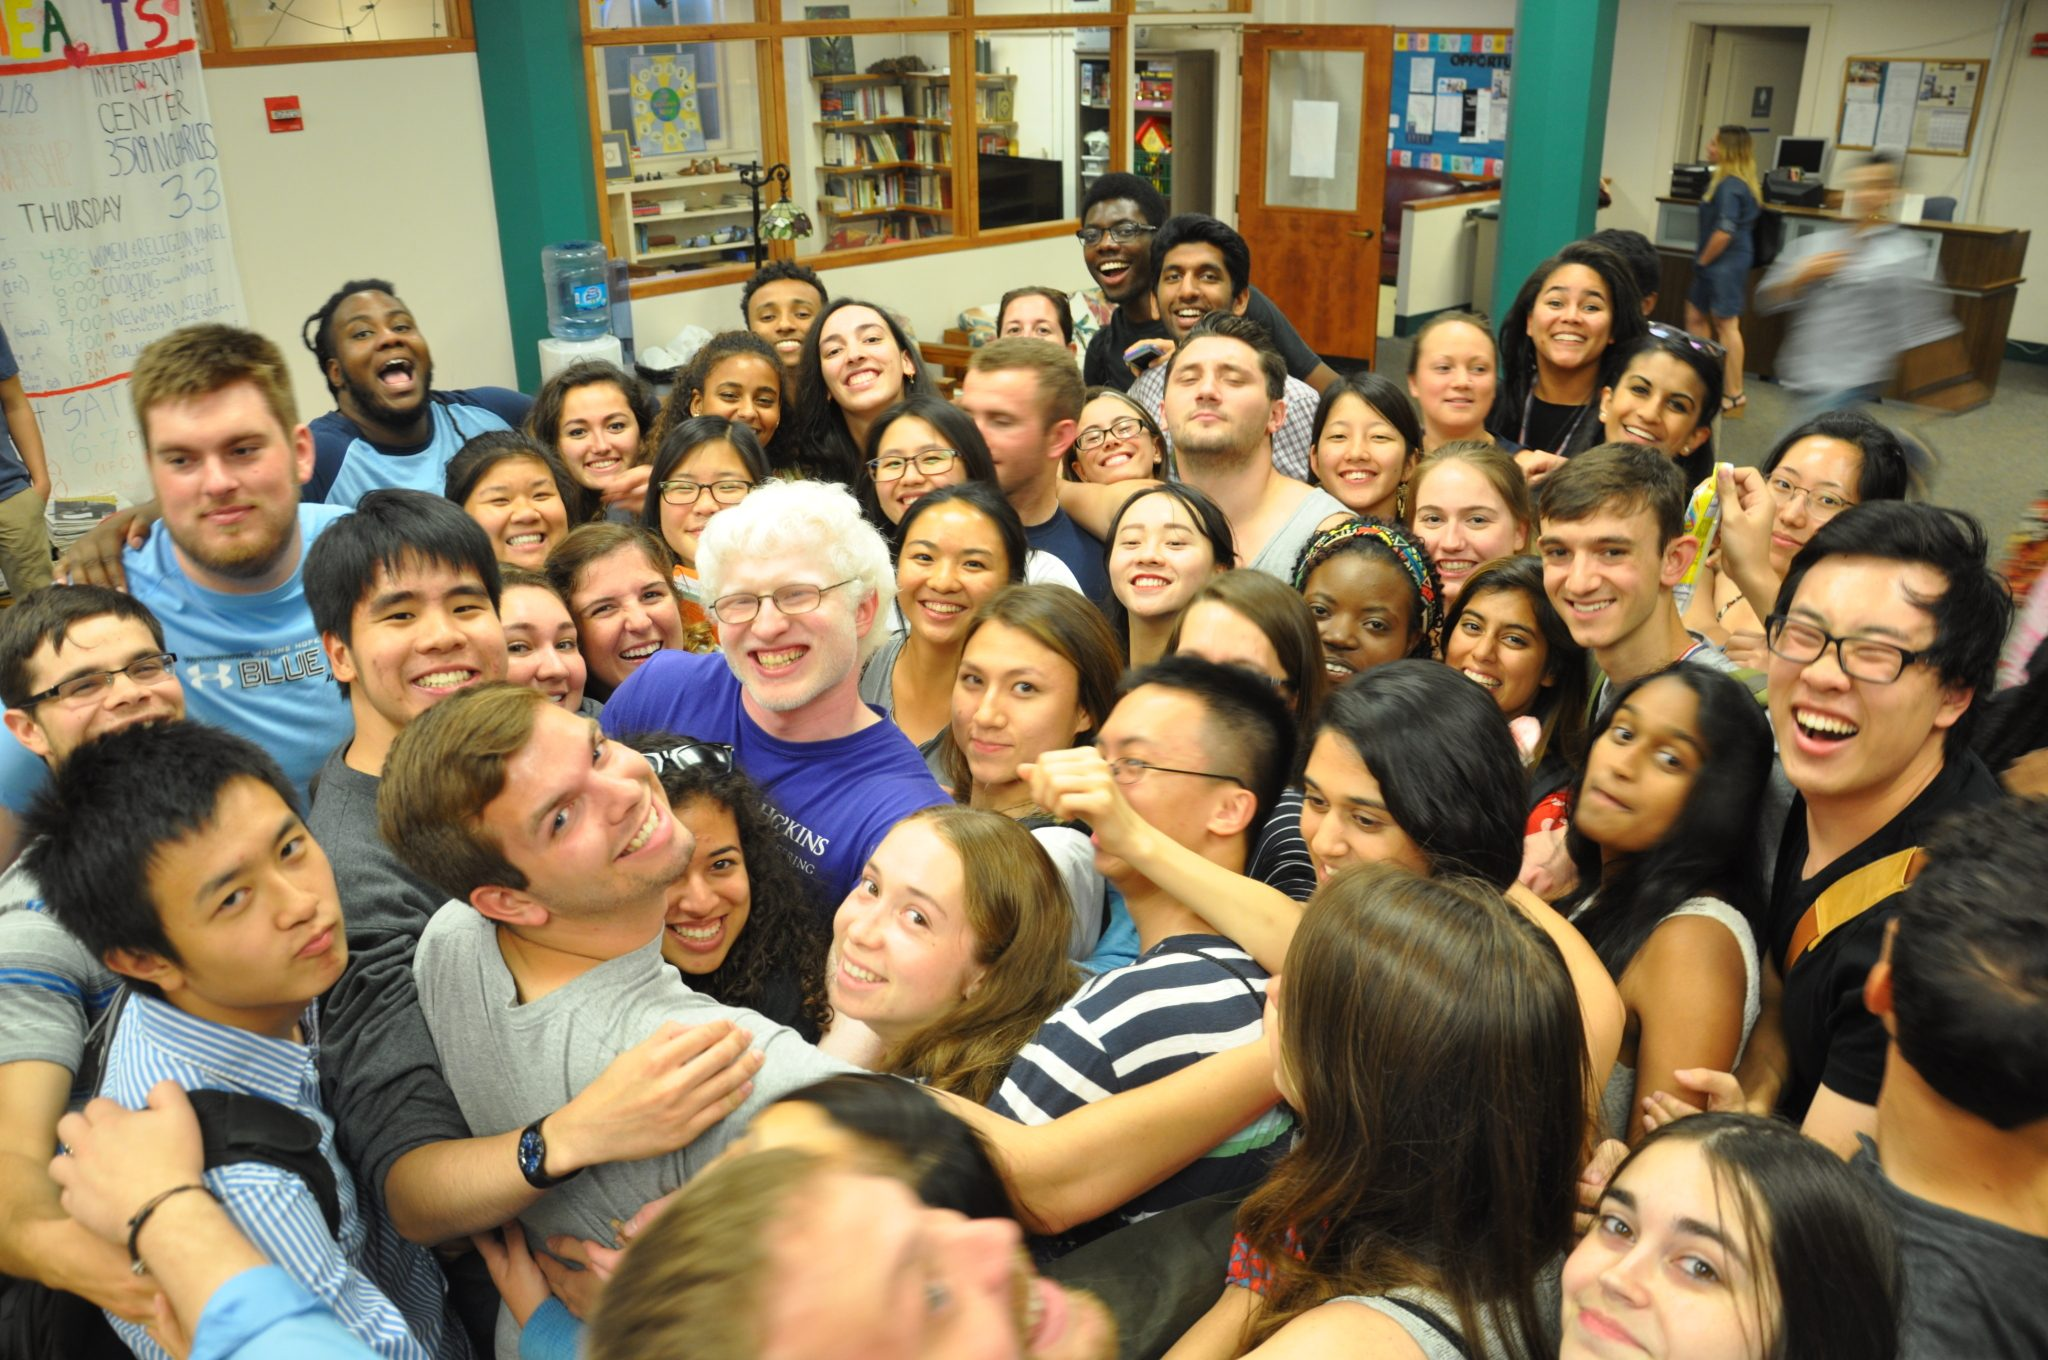 Students and faculty embracing in a group hug